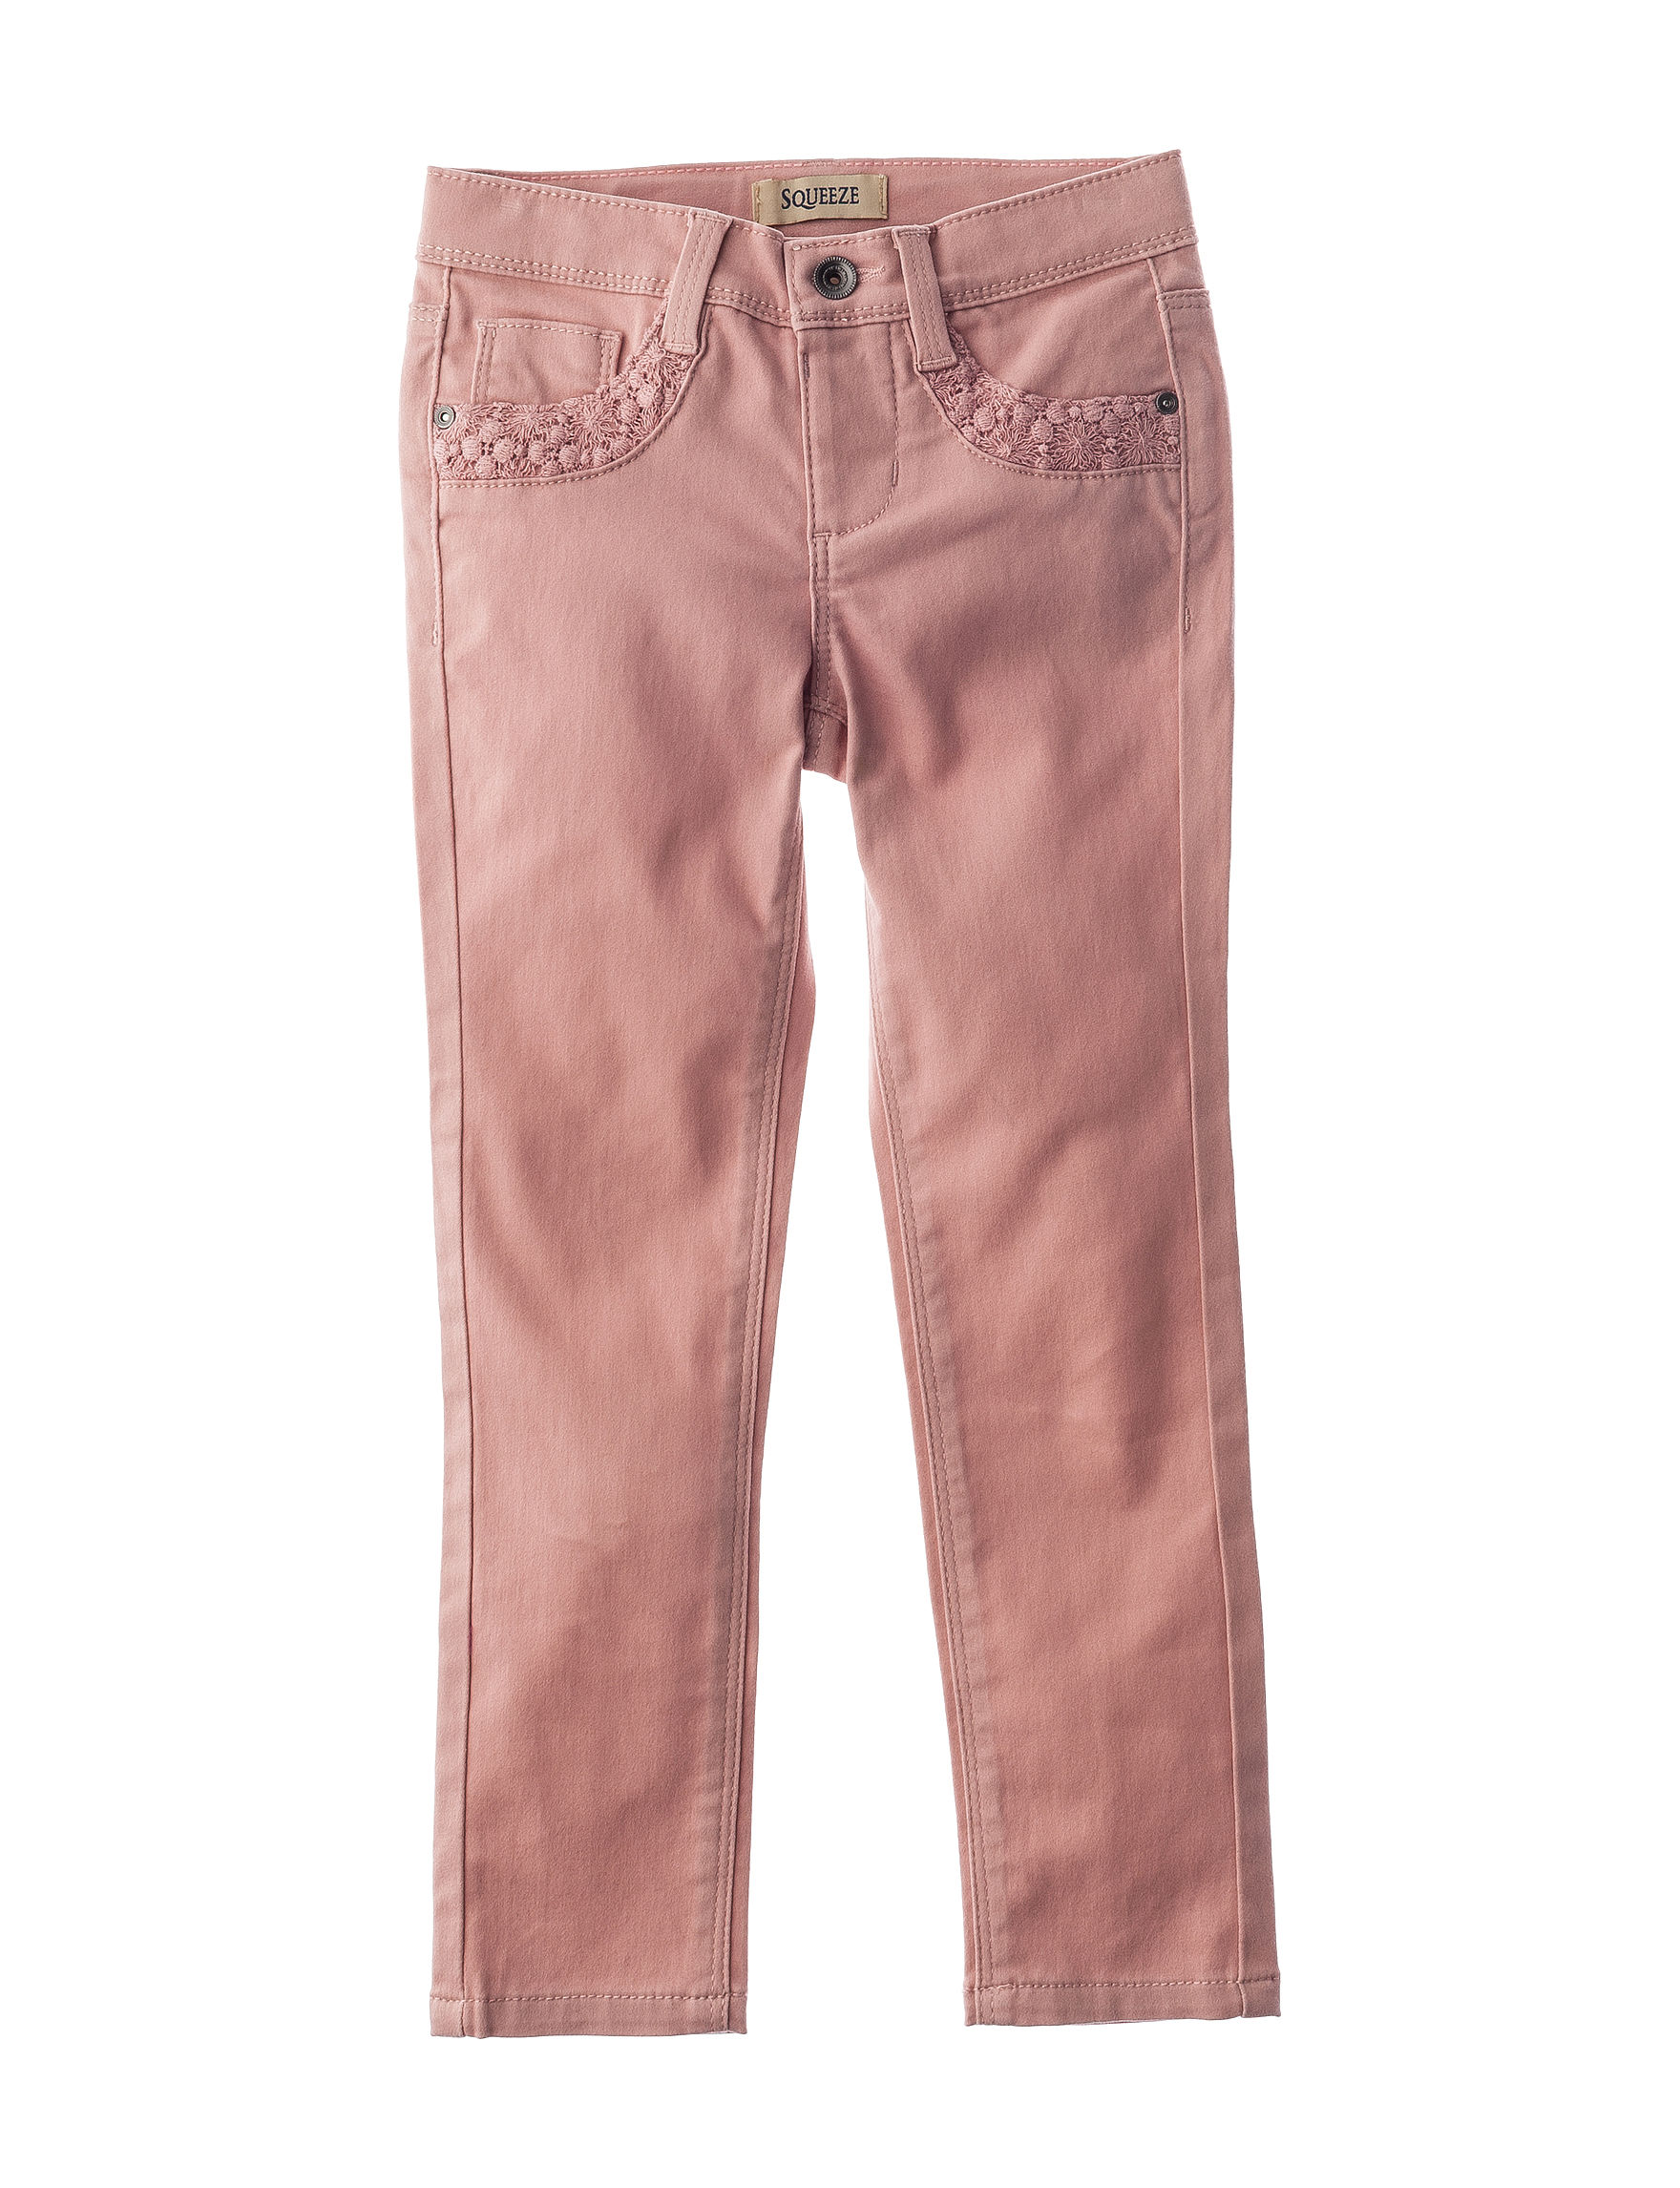 Squeeze Rose Skinny